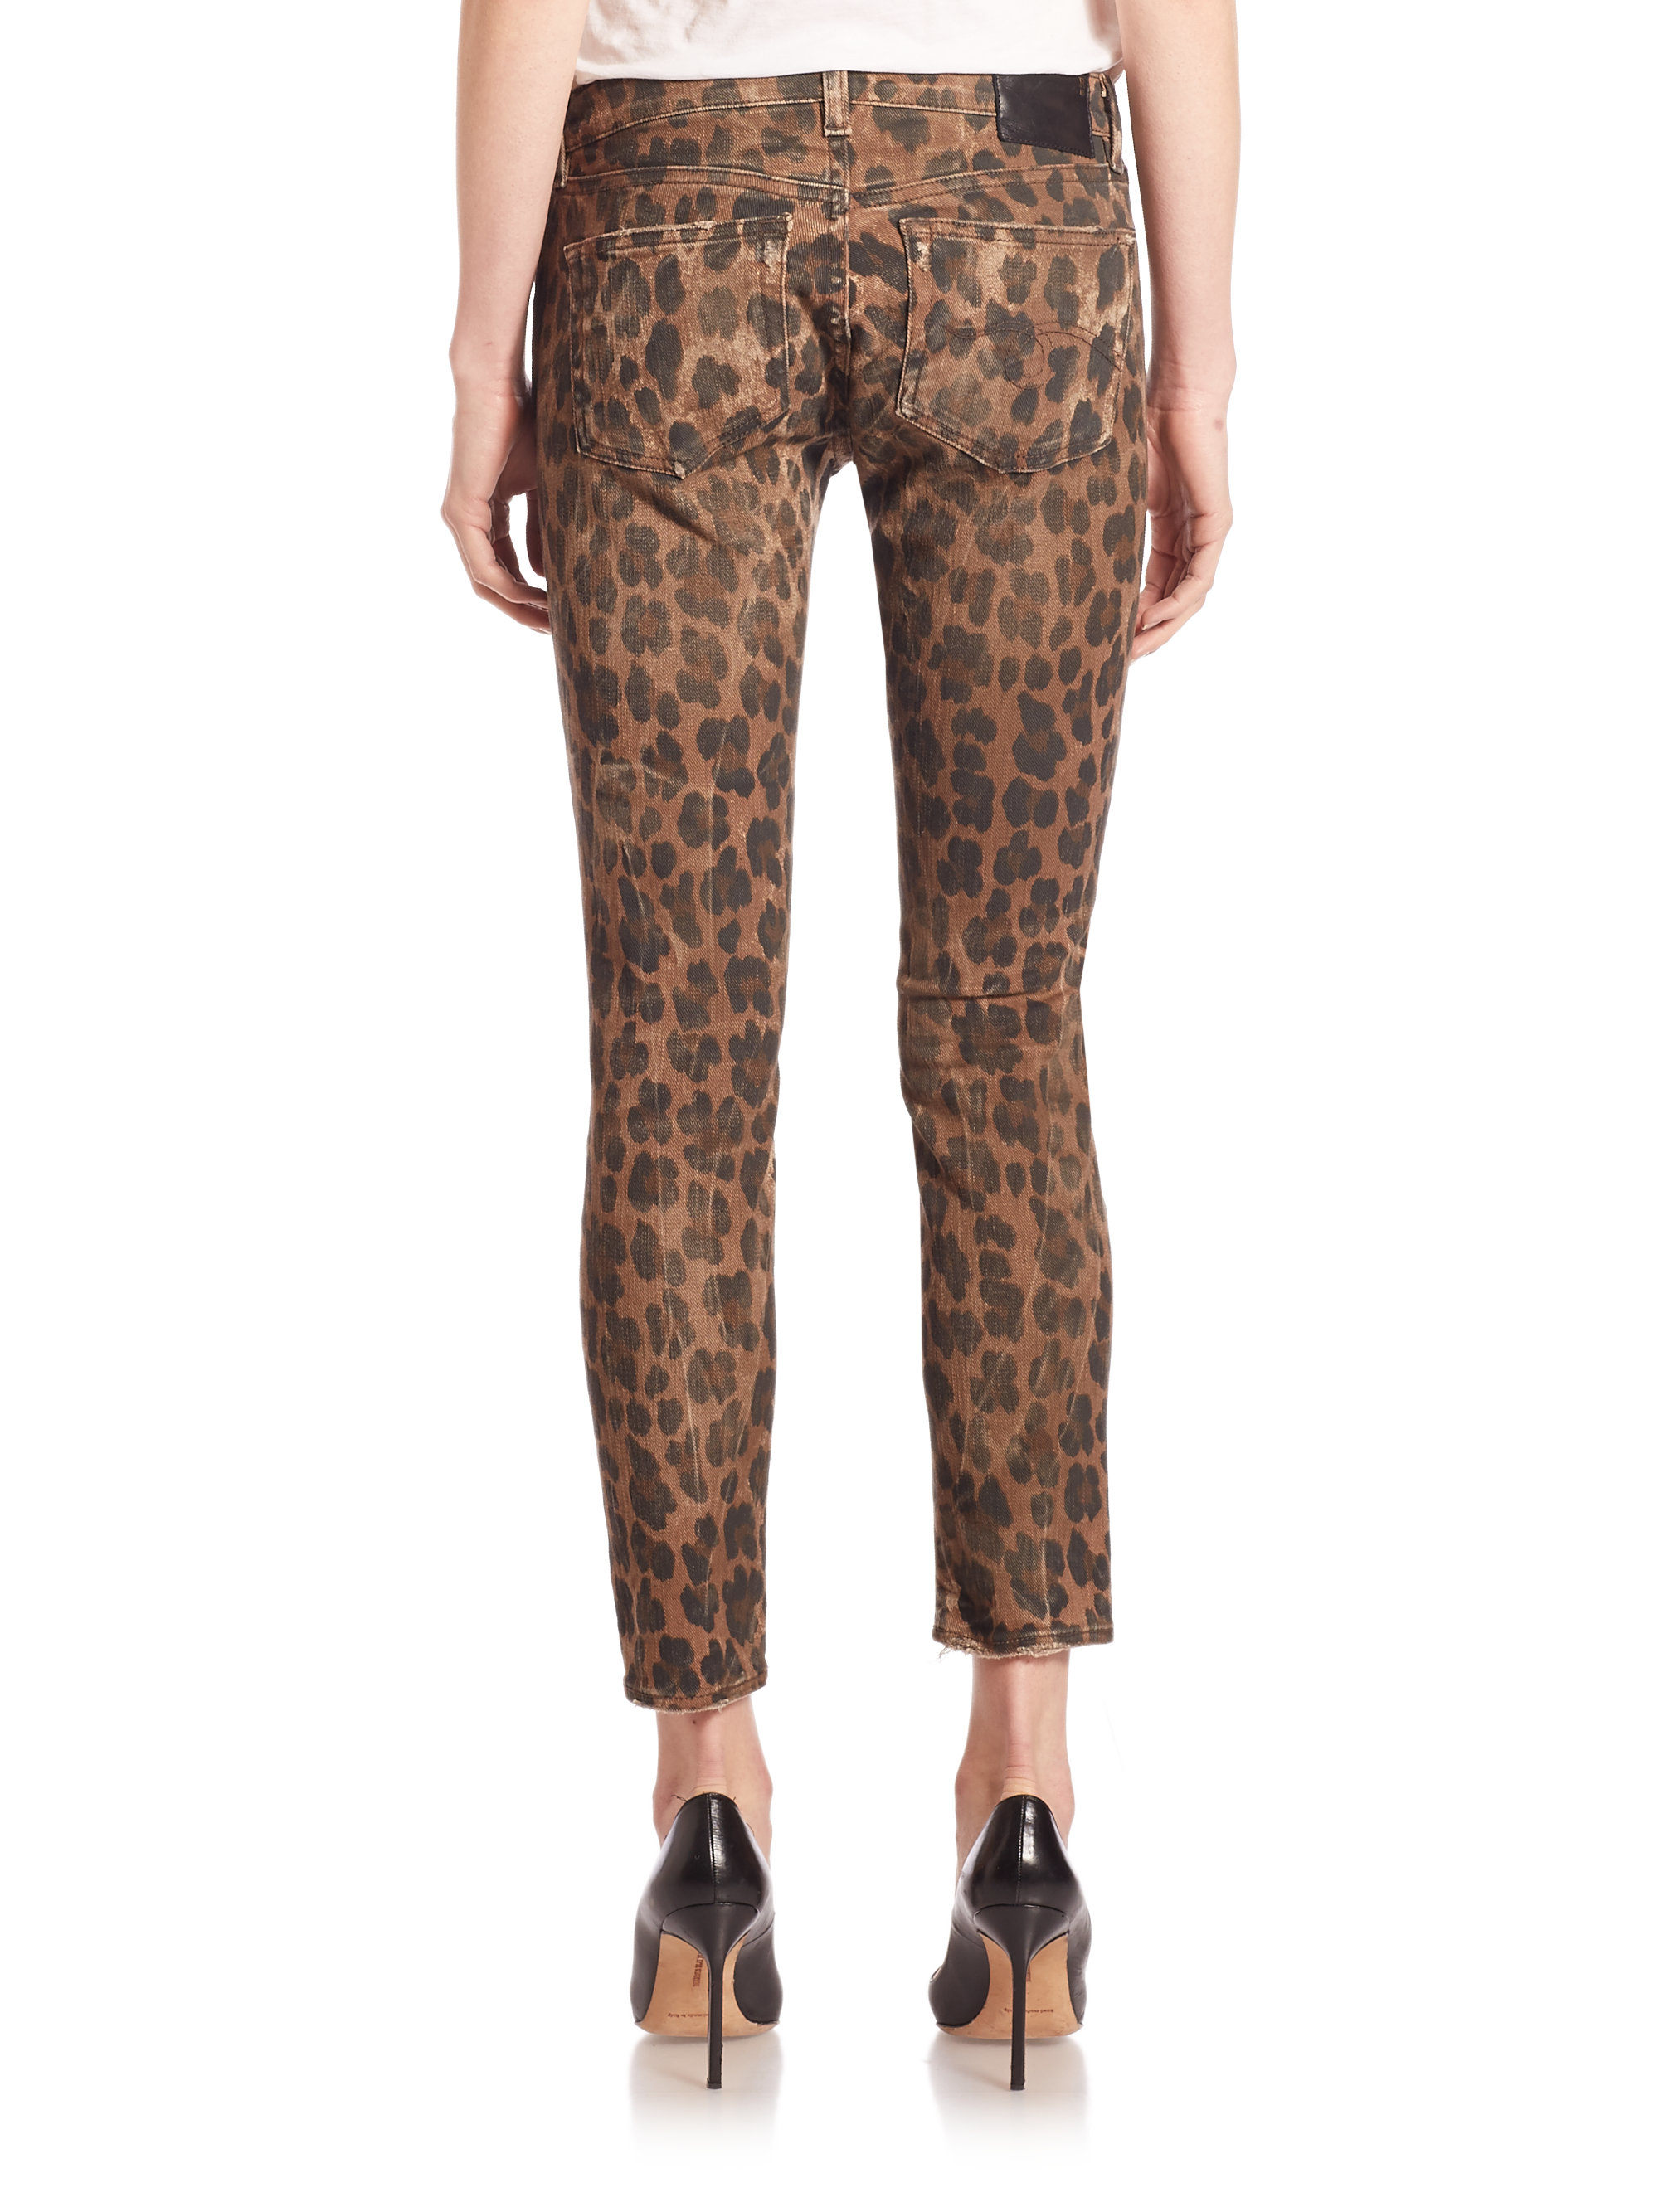 Find leopard skinny jeans at ShopStyle. Shop the latest collection of leopard skinny jeans from the most popular stores - all in one place.